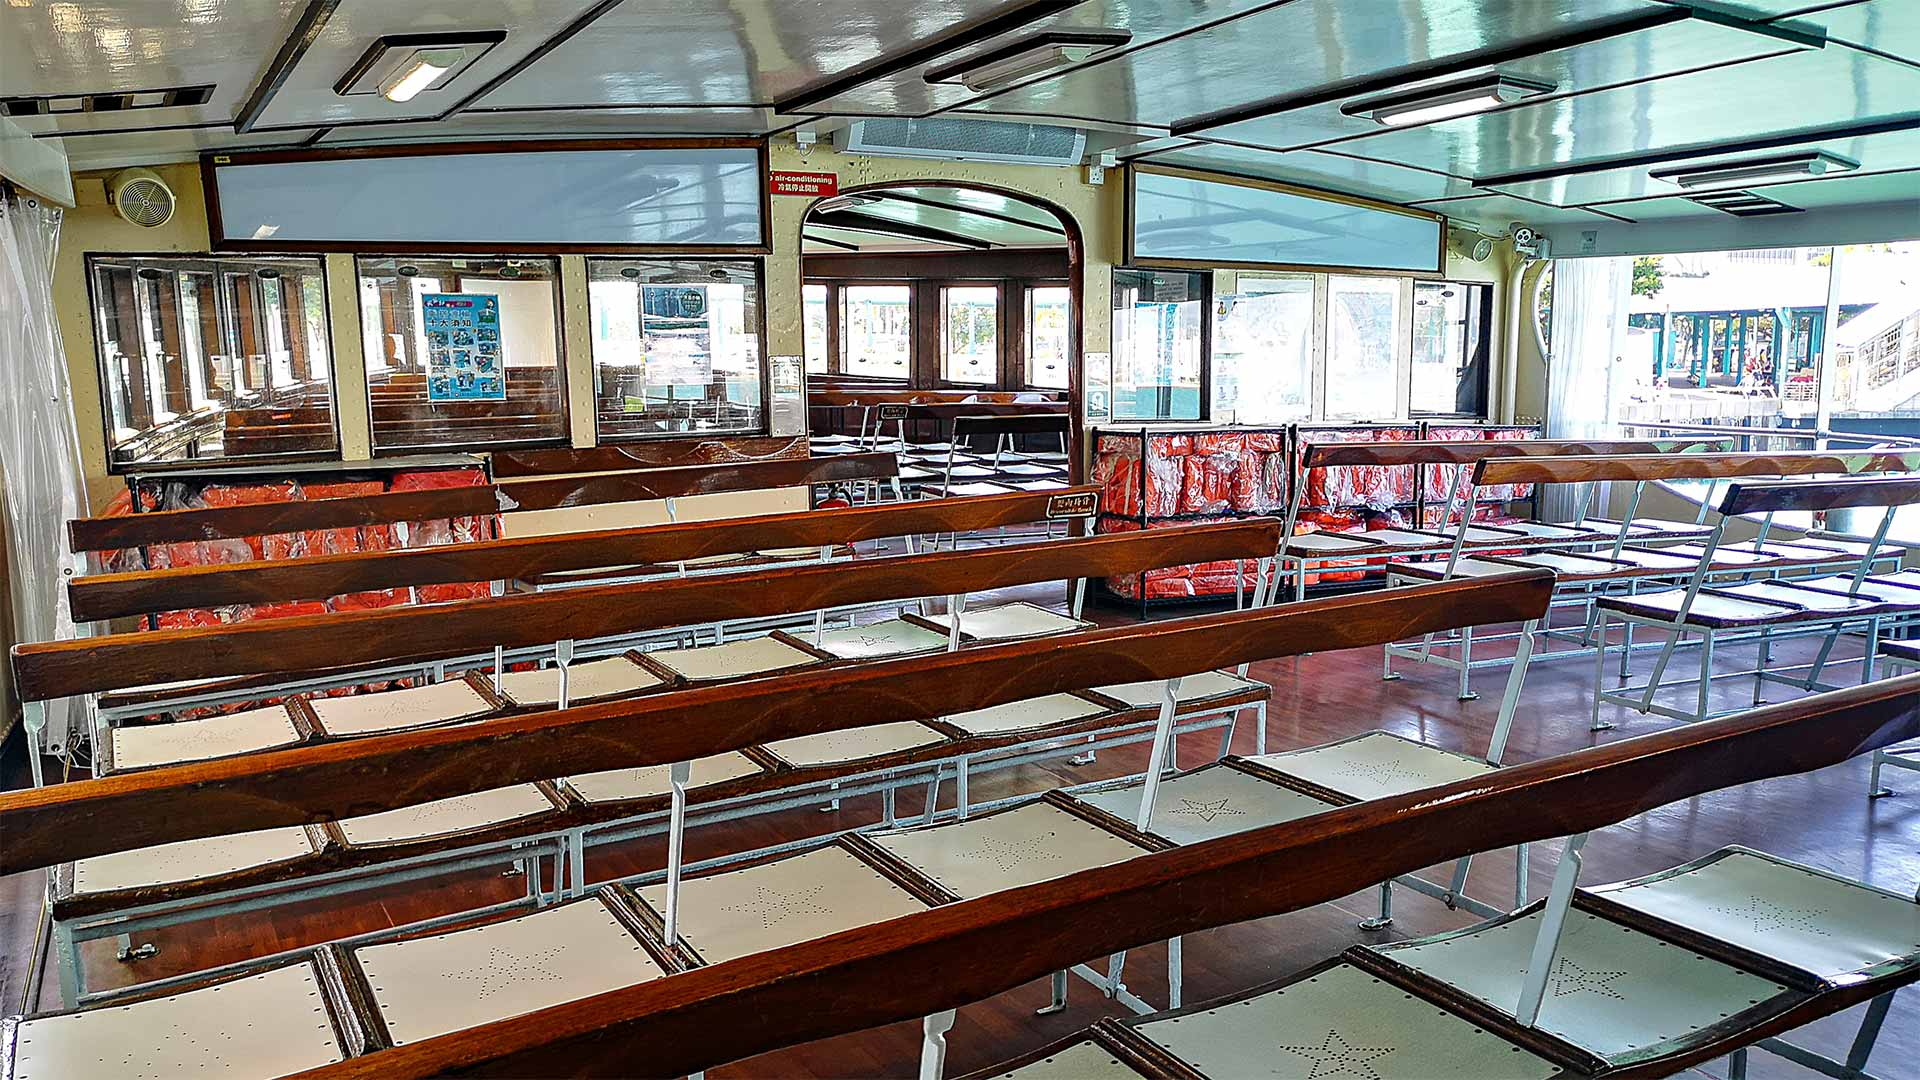 Interior of the Star Ferry from Kowloon to Hong Kong Island